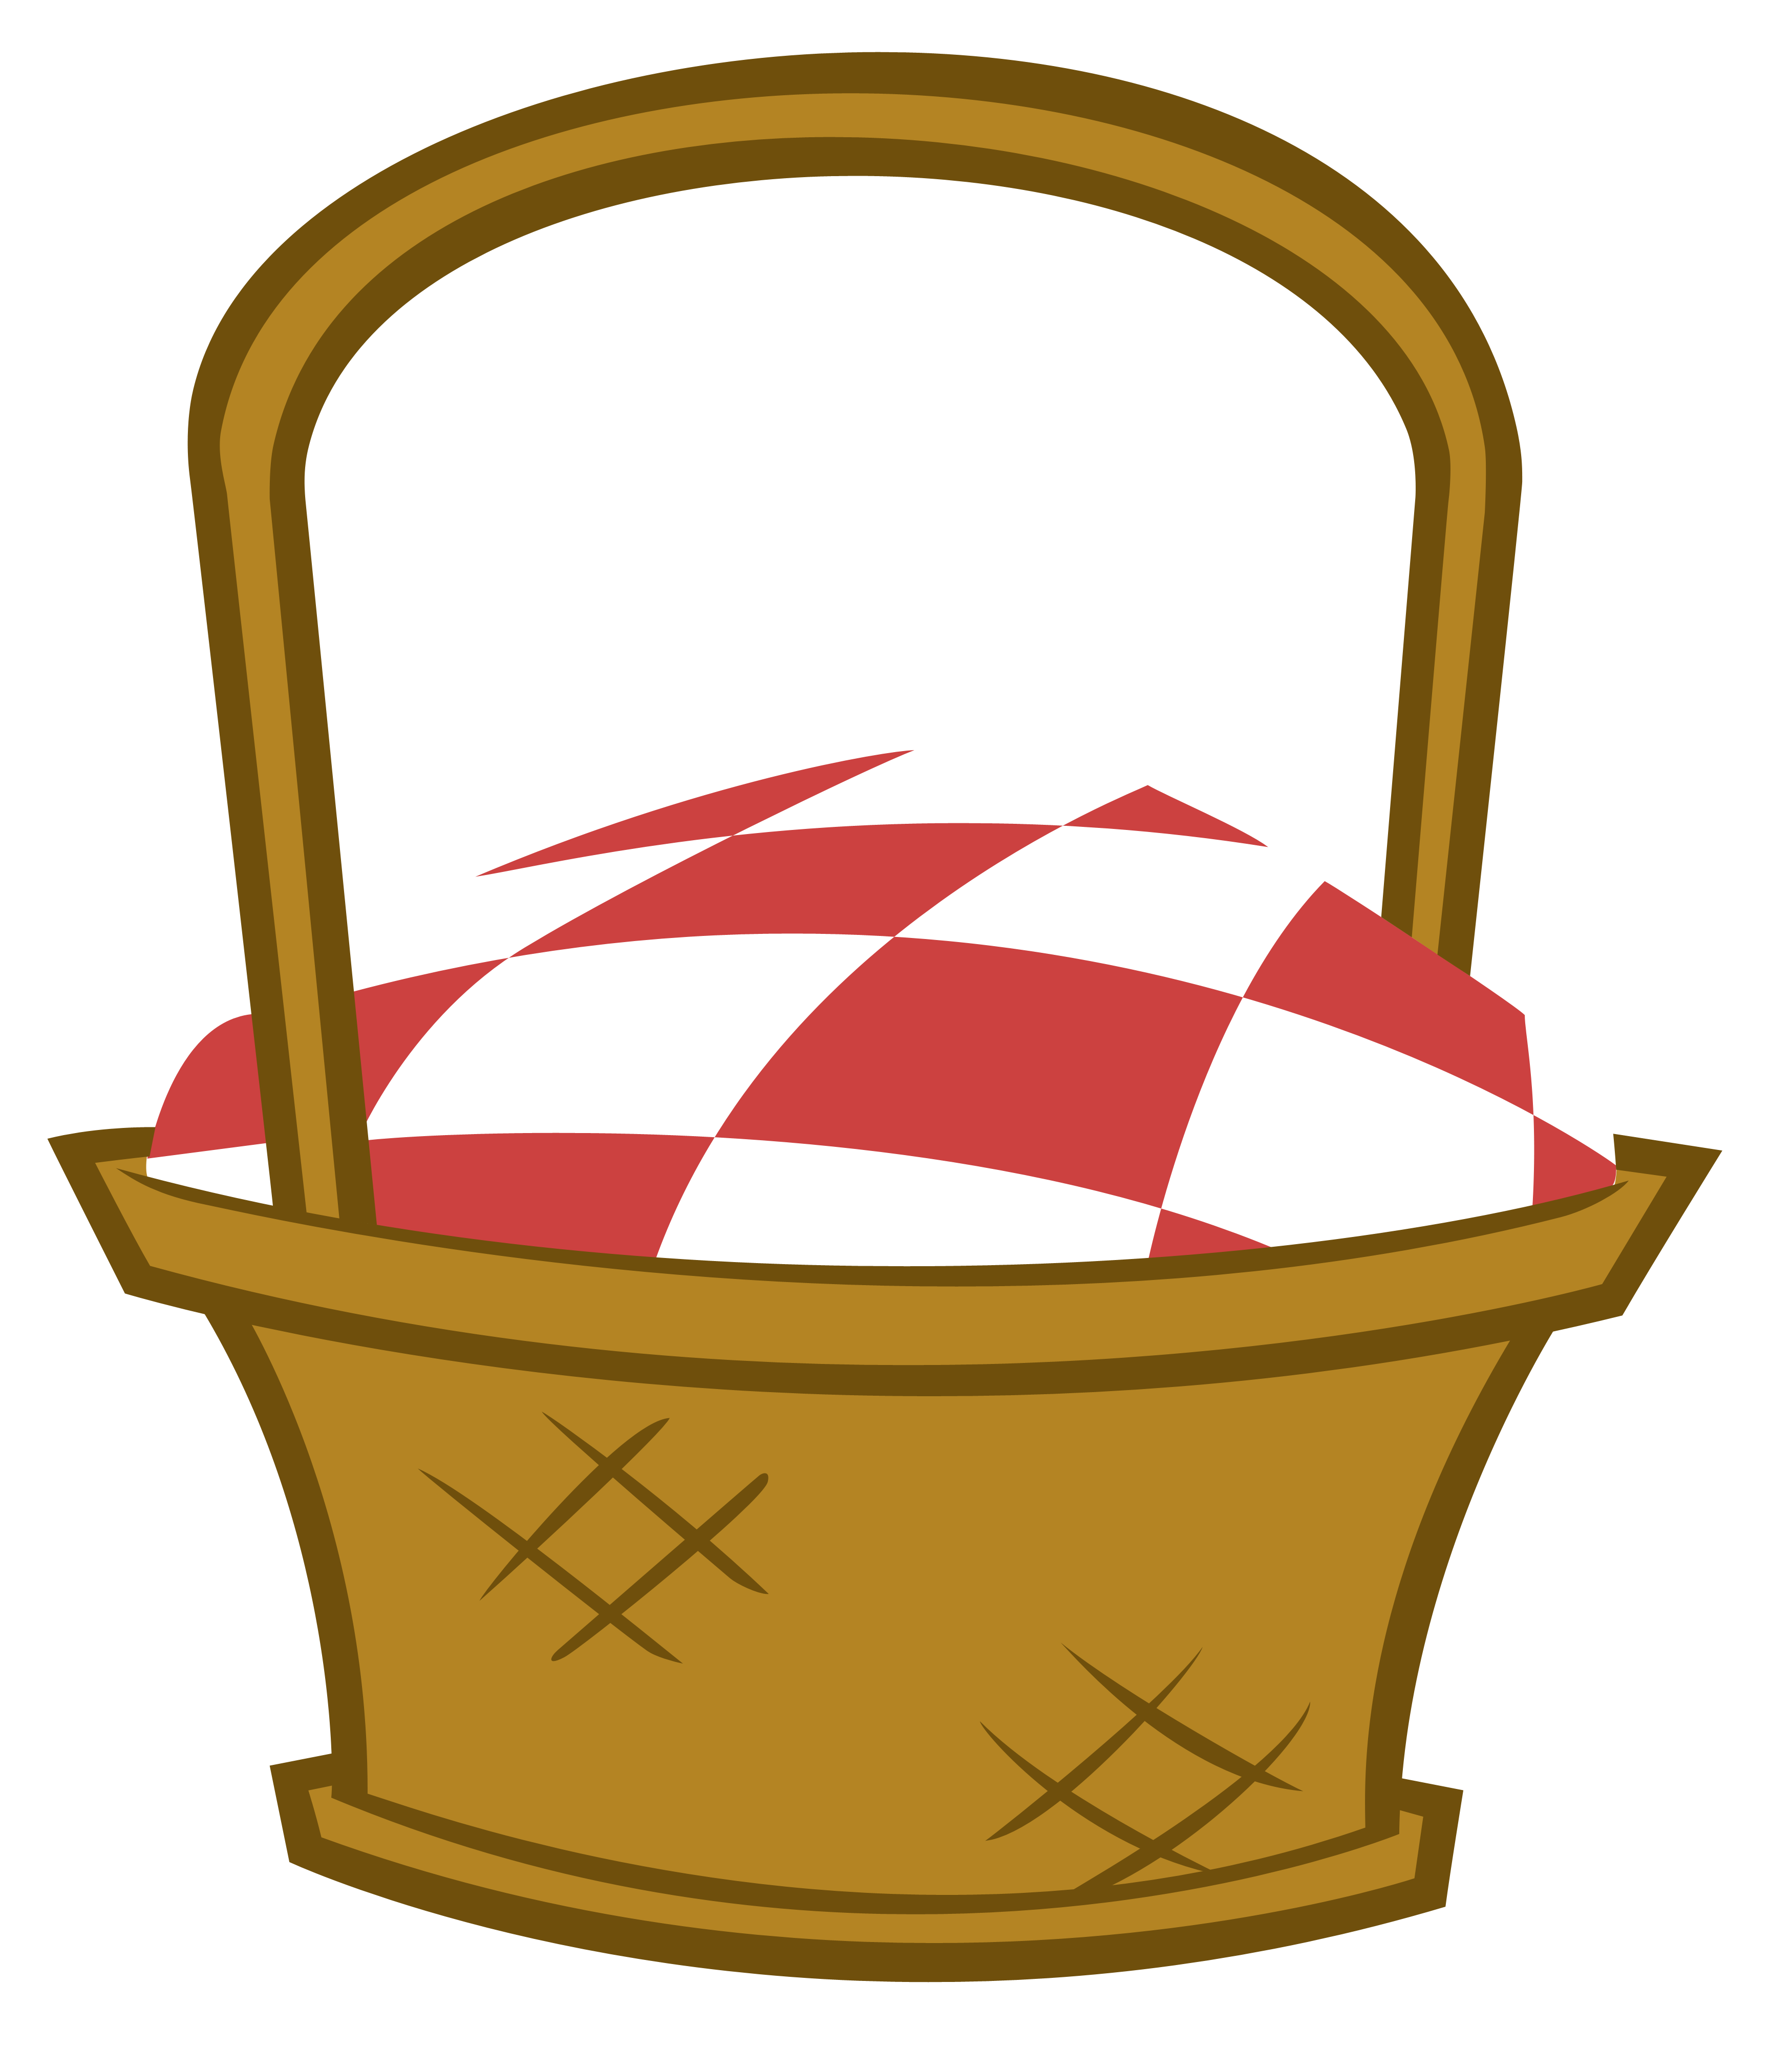 Basket with ants clip. Free clipart picnic